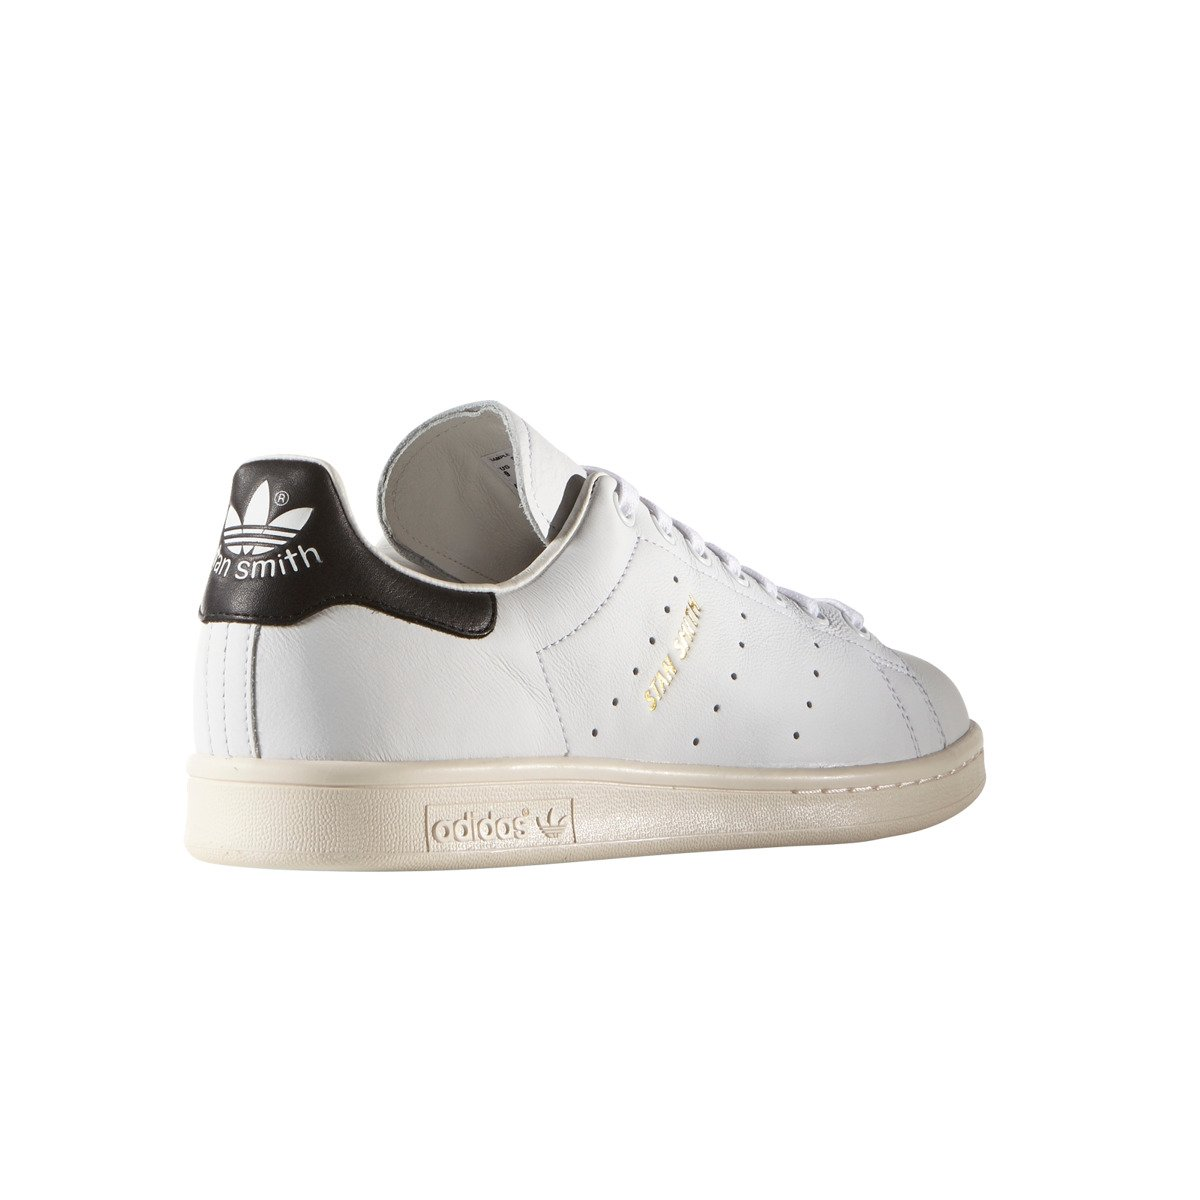 adidas stan smith s75076 basketball shoes sklep koszykarski. Black Bedroom Furniture Sets. Home Design Ideas